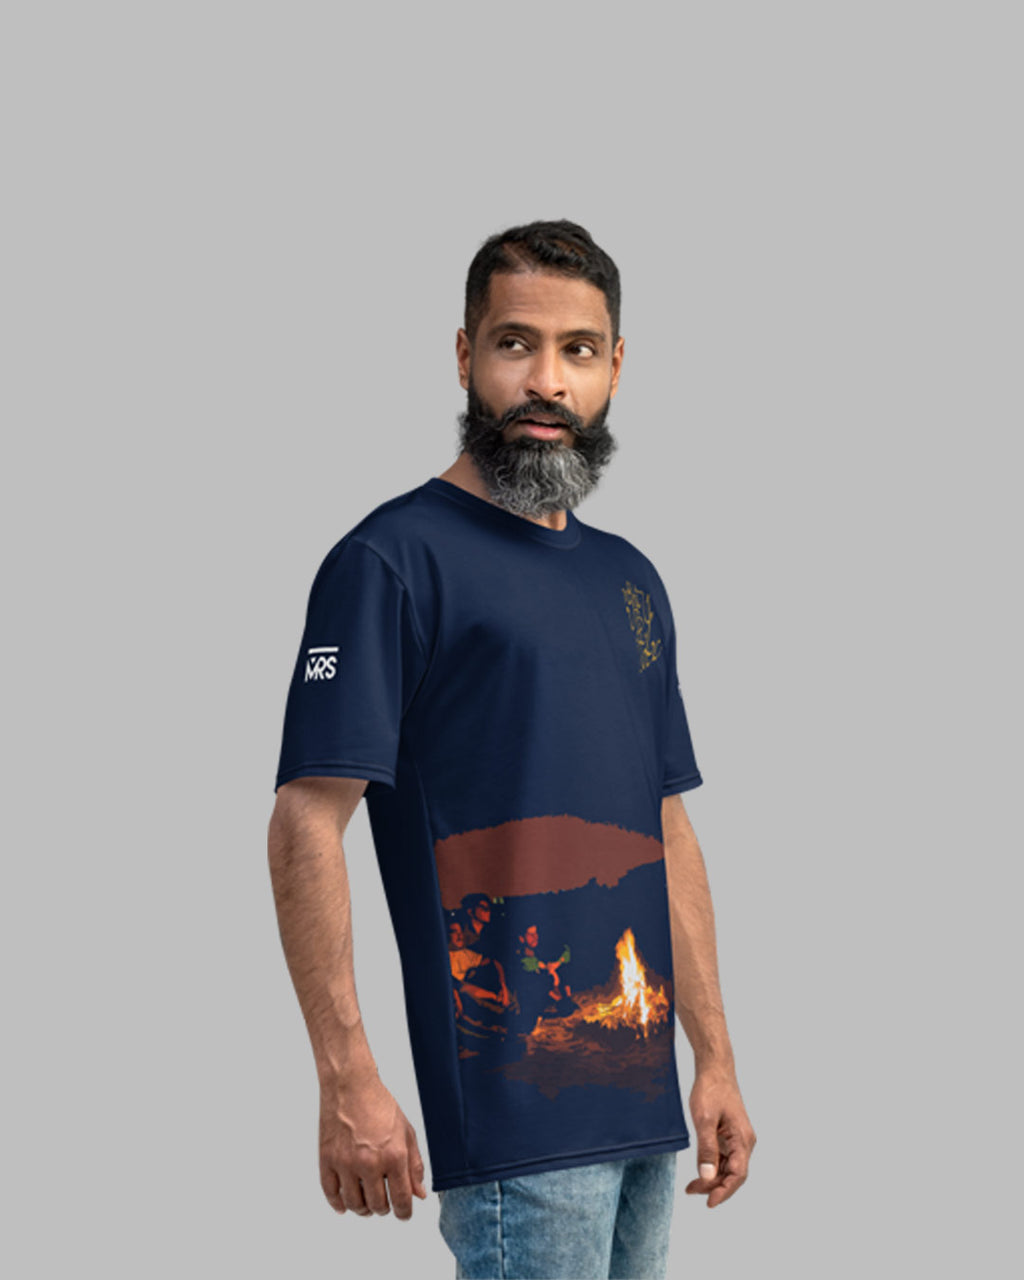 The Bonfire T Shirt (ft. Mvrs) - MVSRI